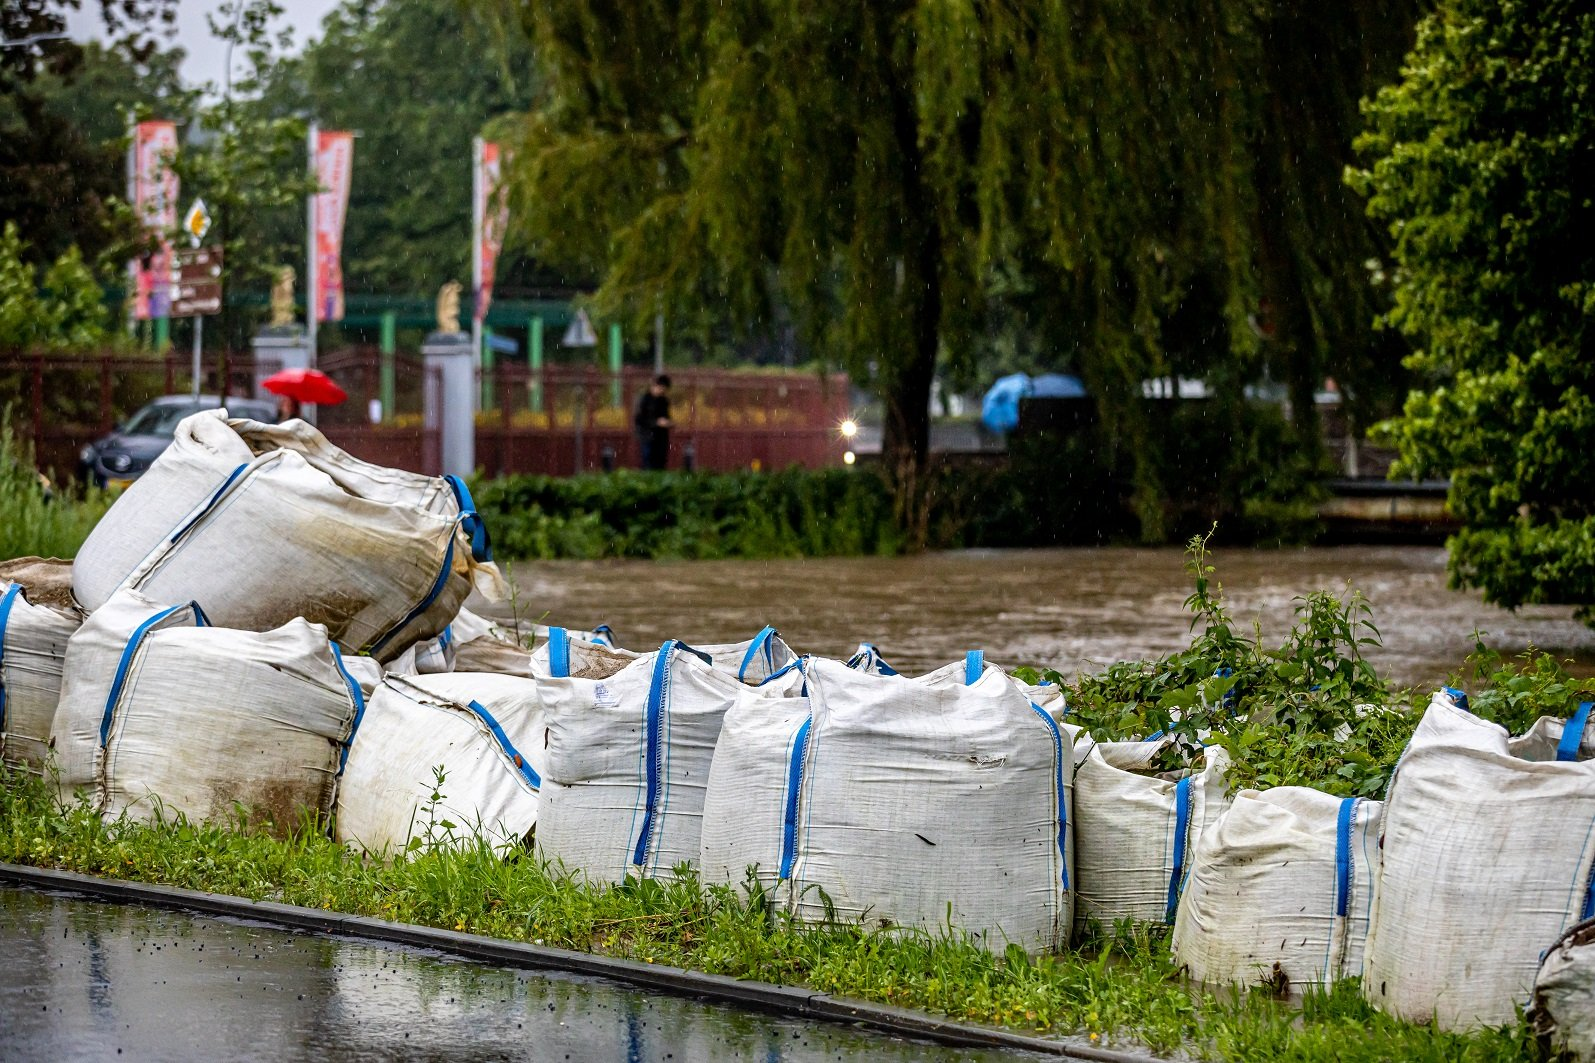 14 times more vulnerable to flooding in Europe – Wel.nl